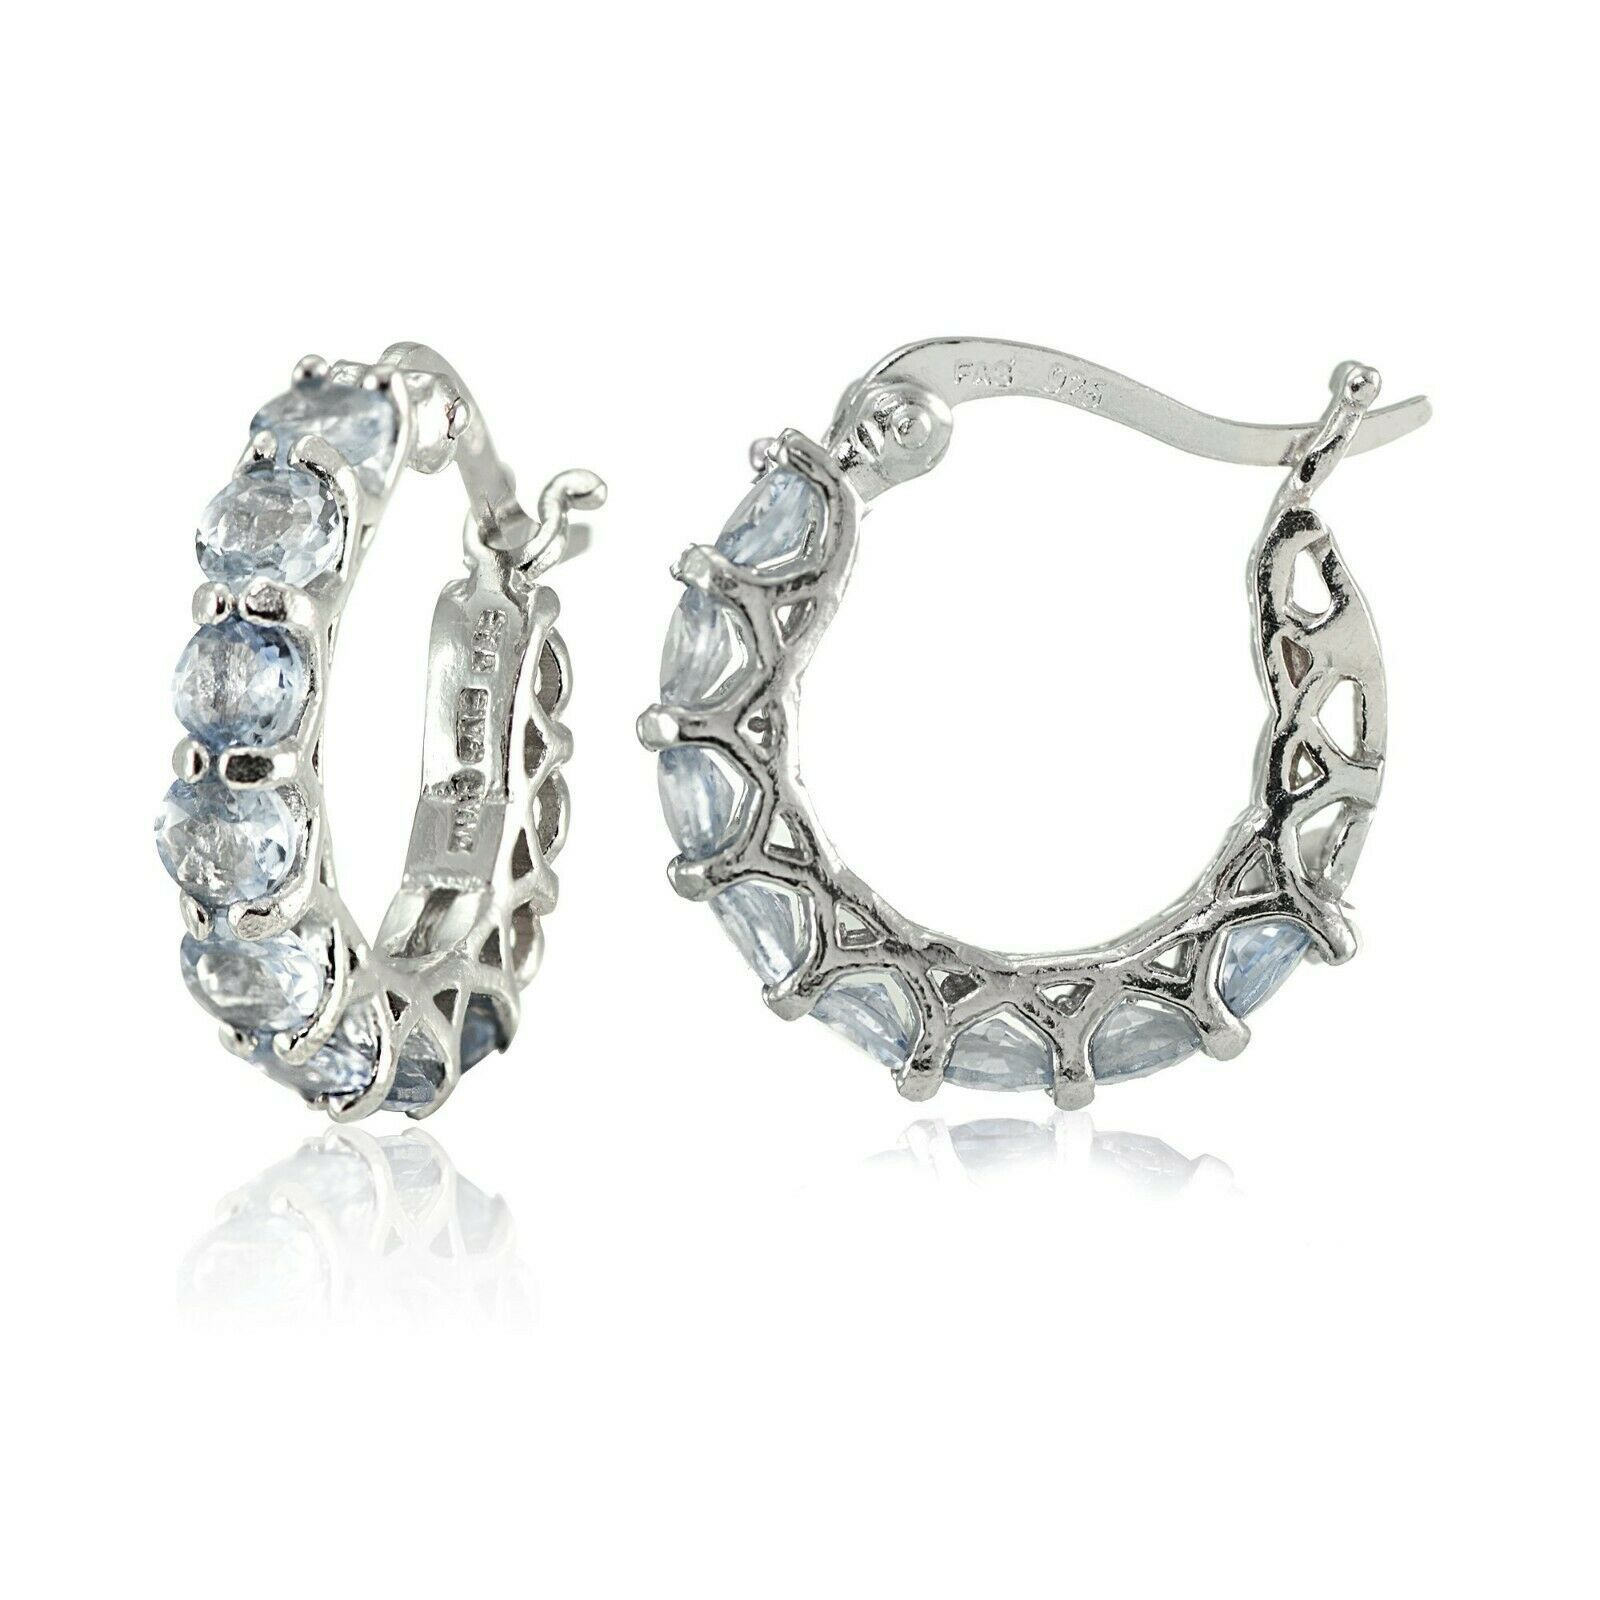 Aqua Blue Swarovski Crystal Pave Hoop Dangle Earrings